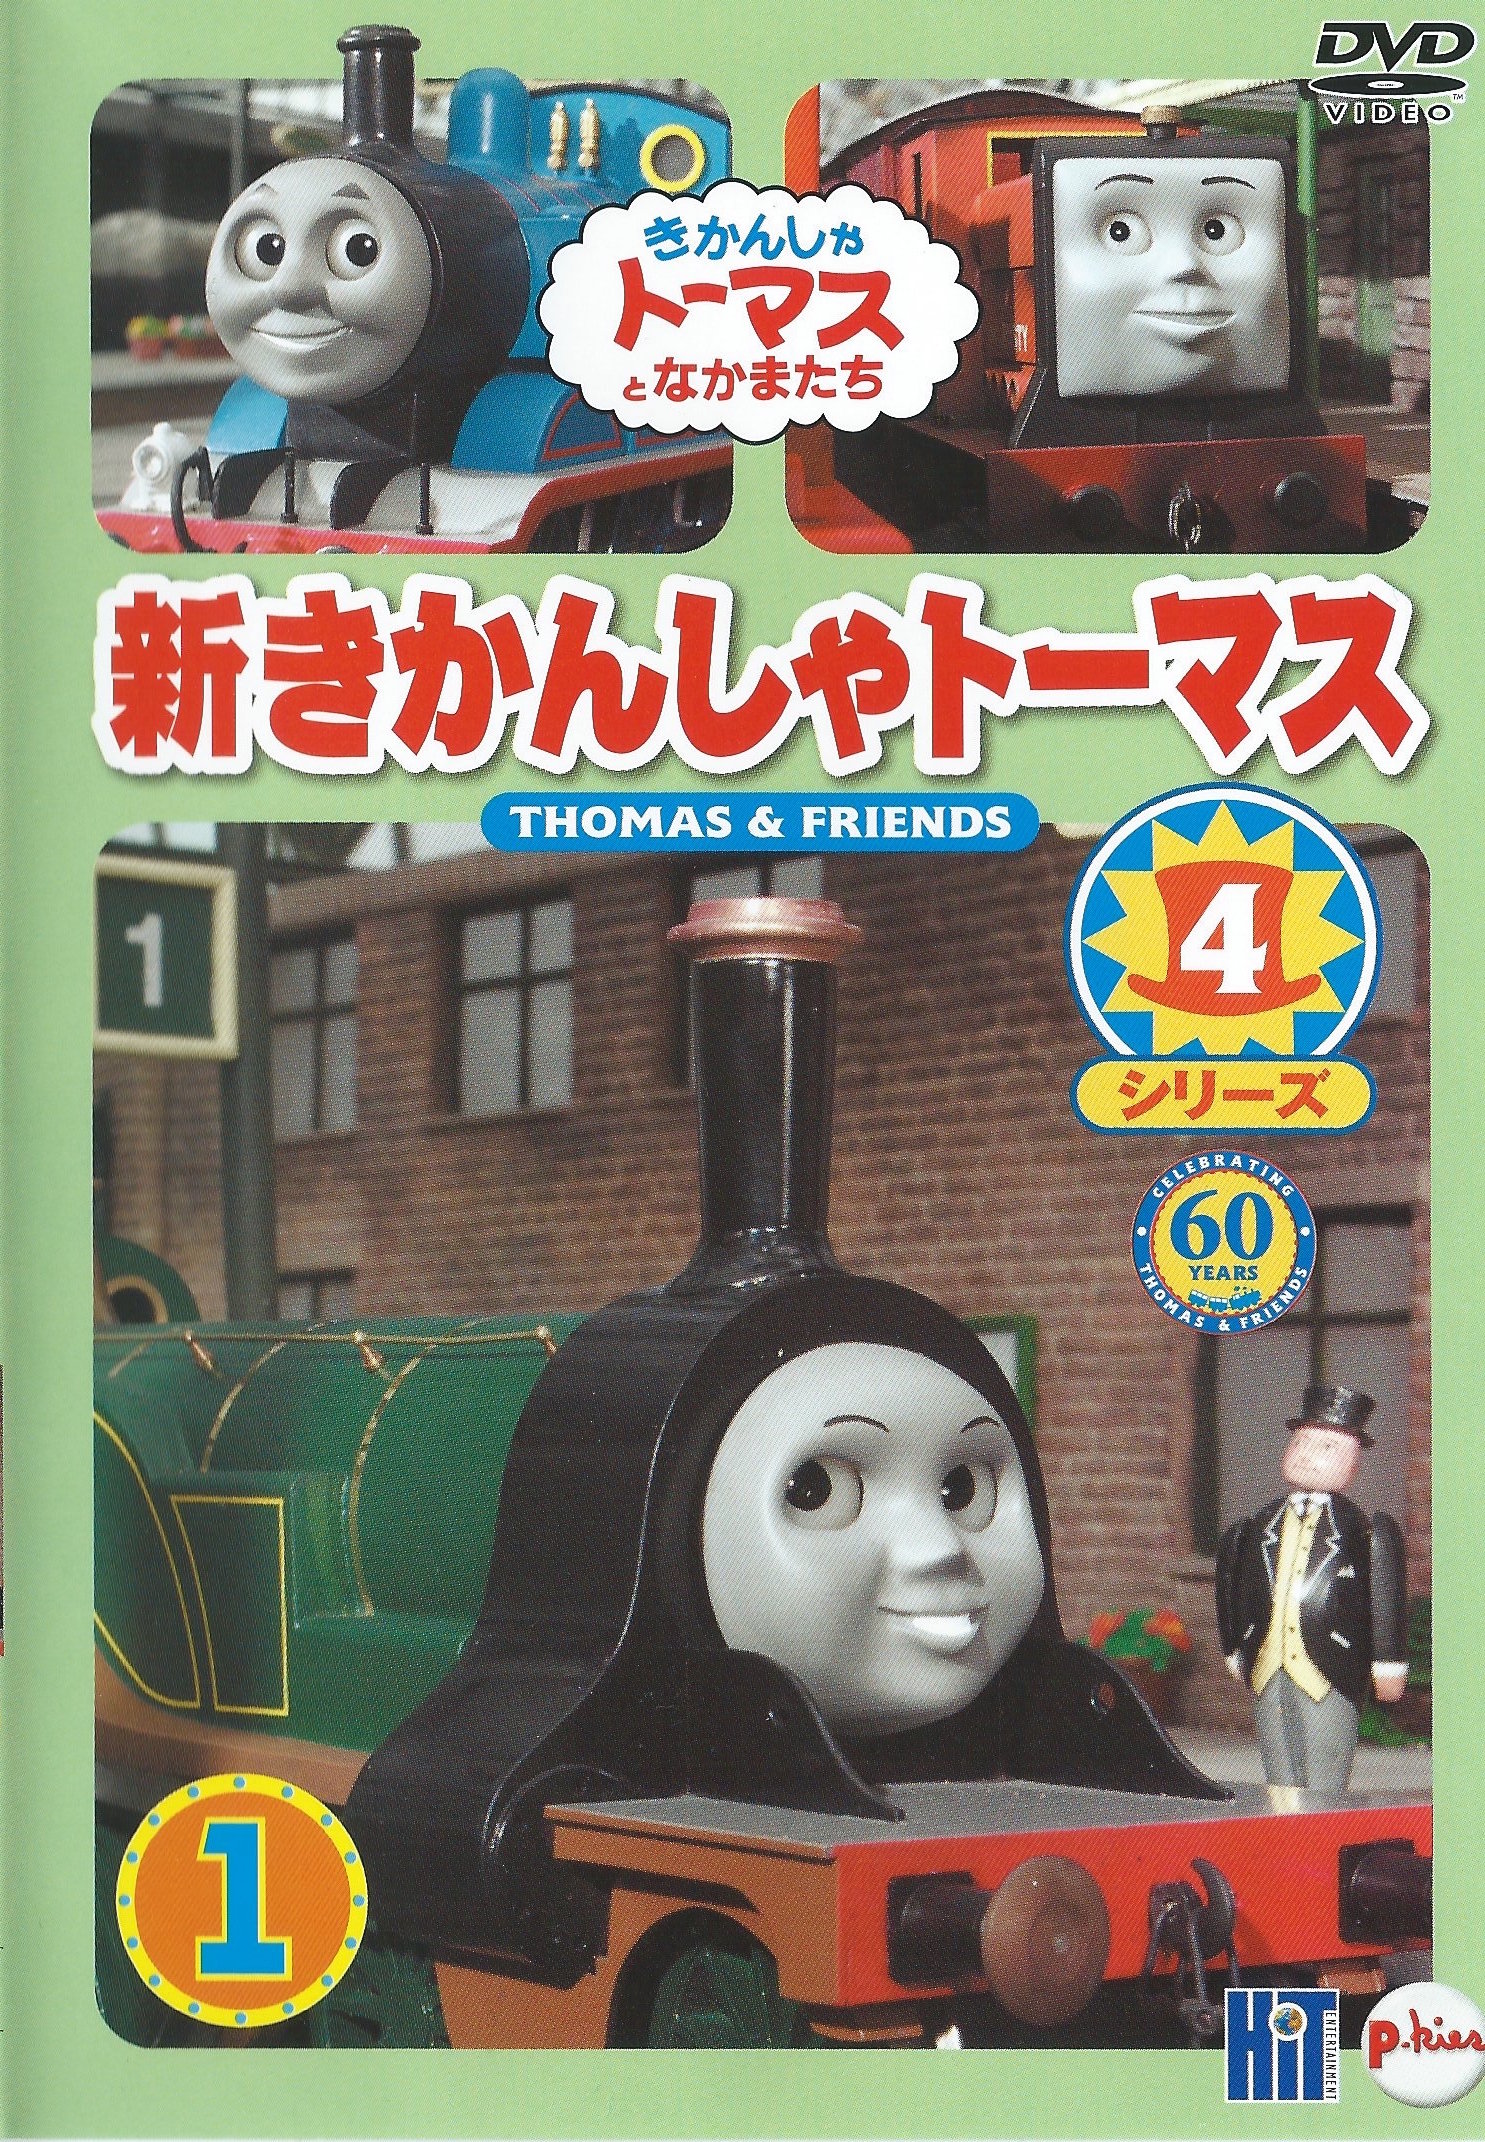 Thomas & Friends: Season 7 (Original US Music)